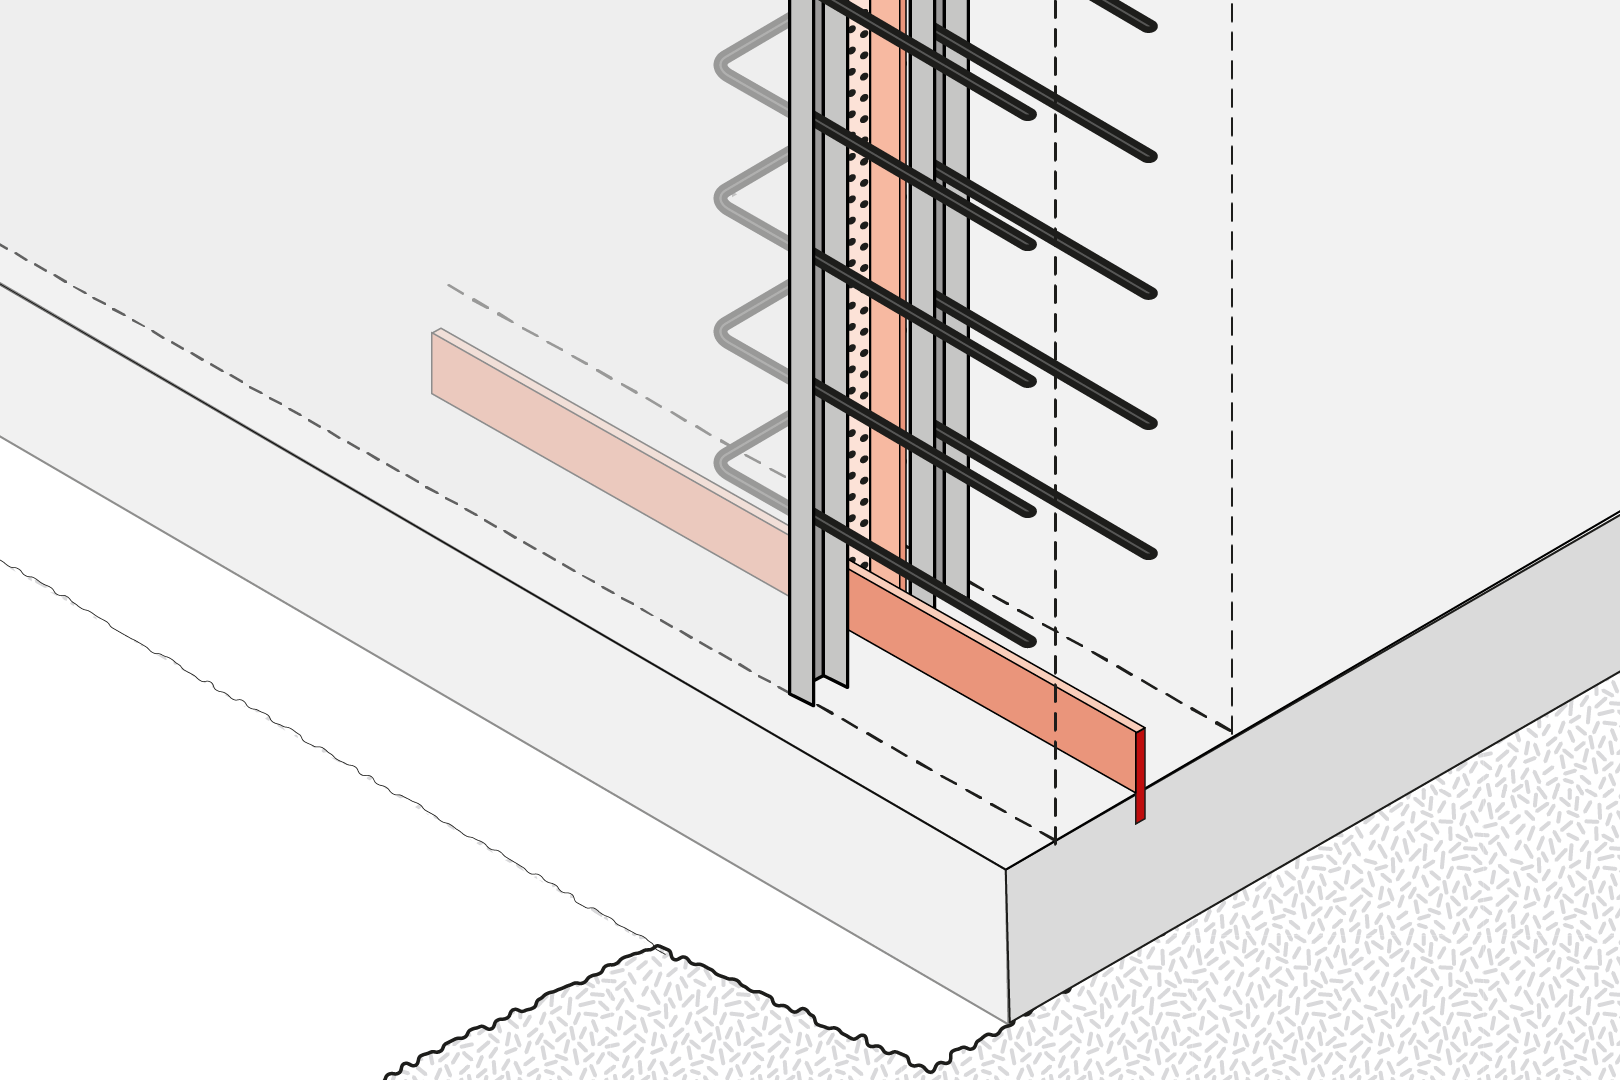 Construction Joint With Reinforcement Connection For Force Transmission And Coated Metal Waterstop